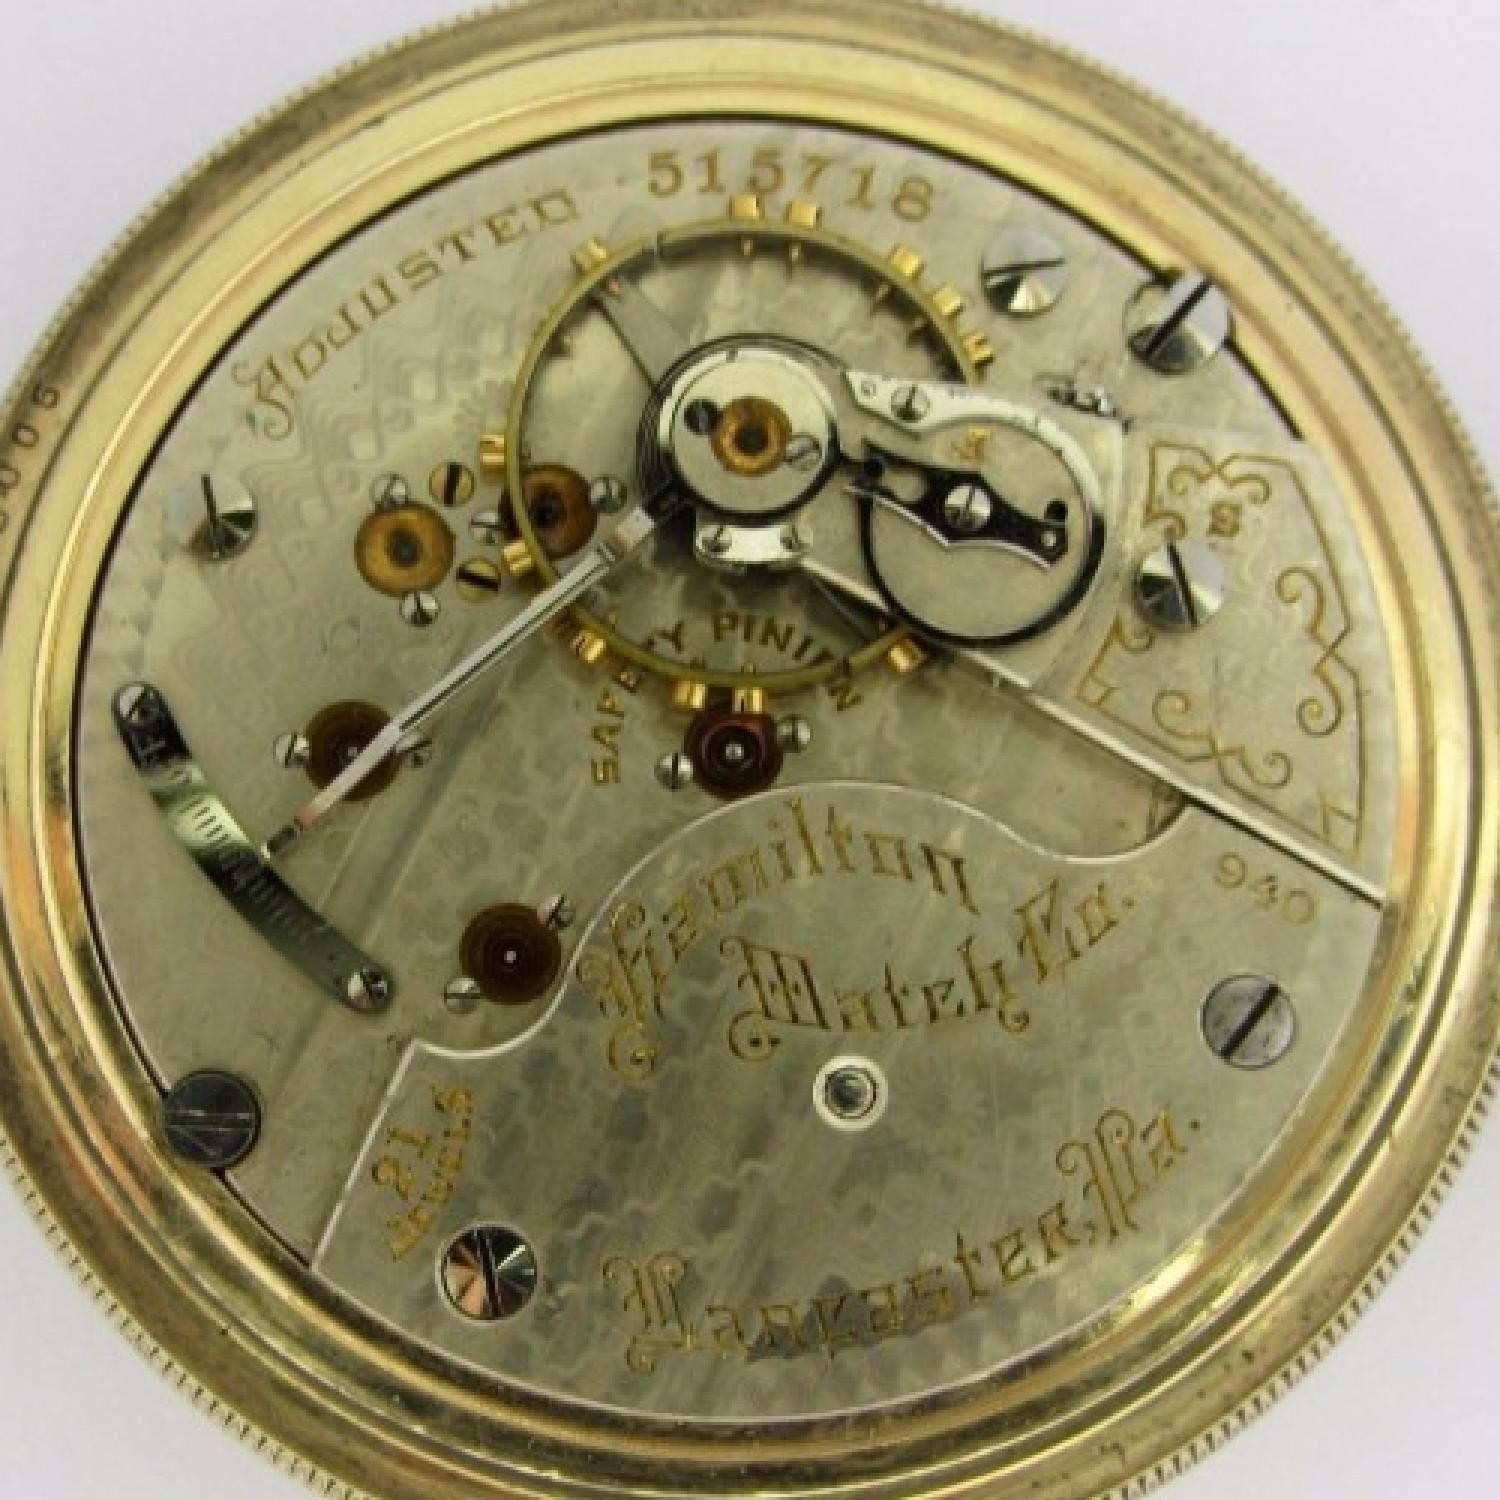 Image of Hamilton 940 #515718 Movement